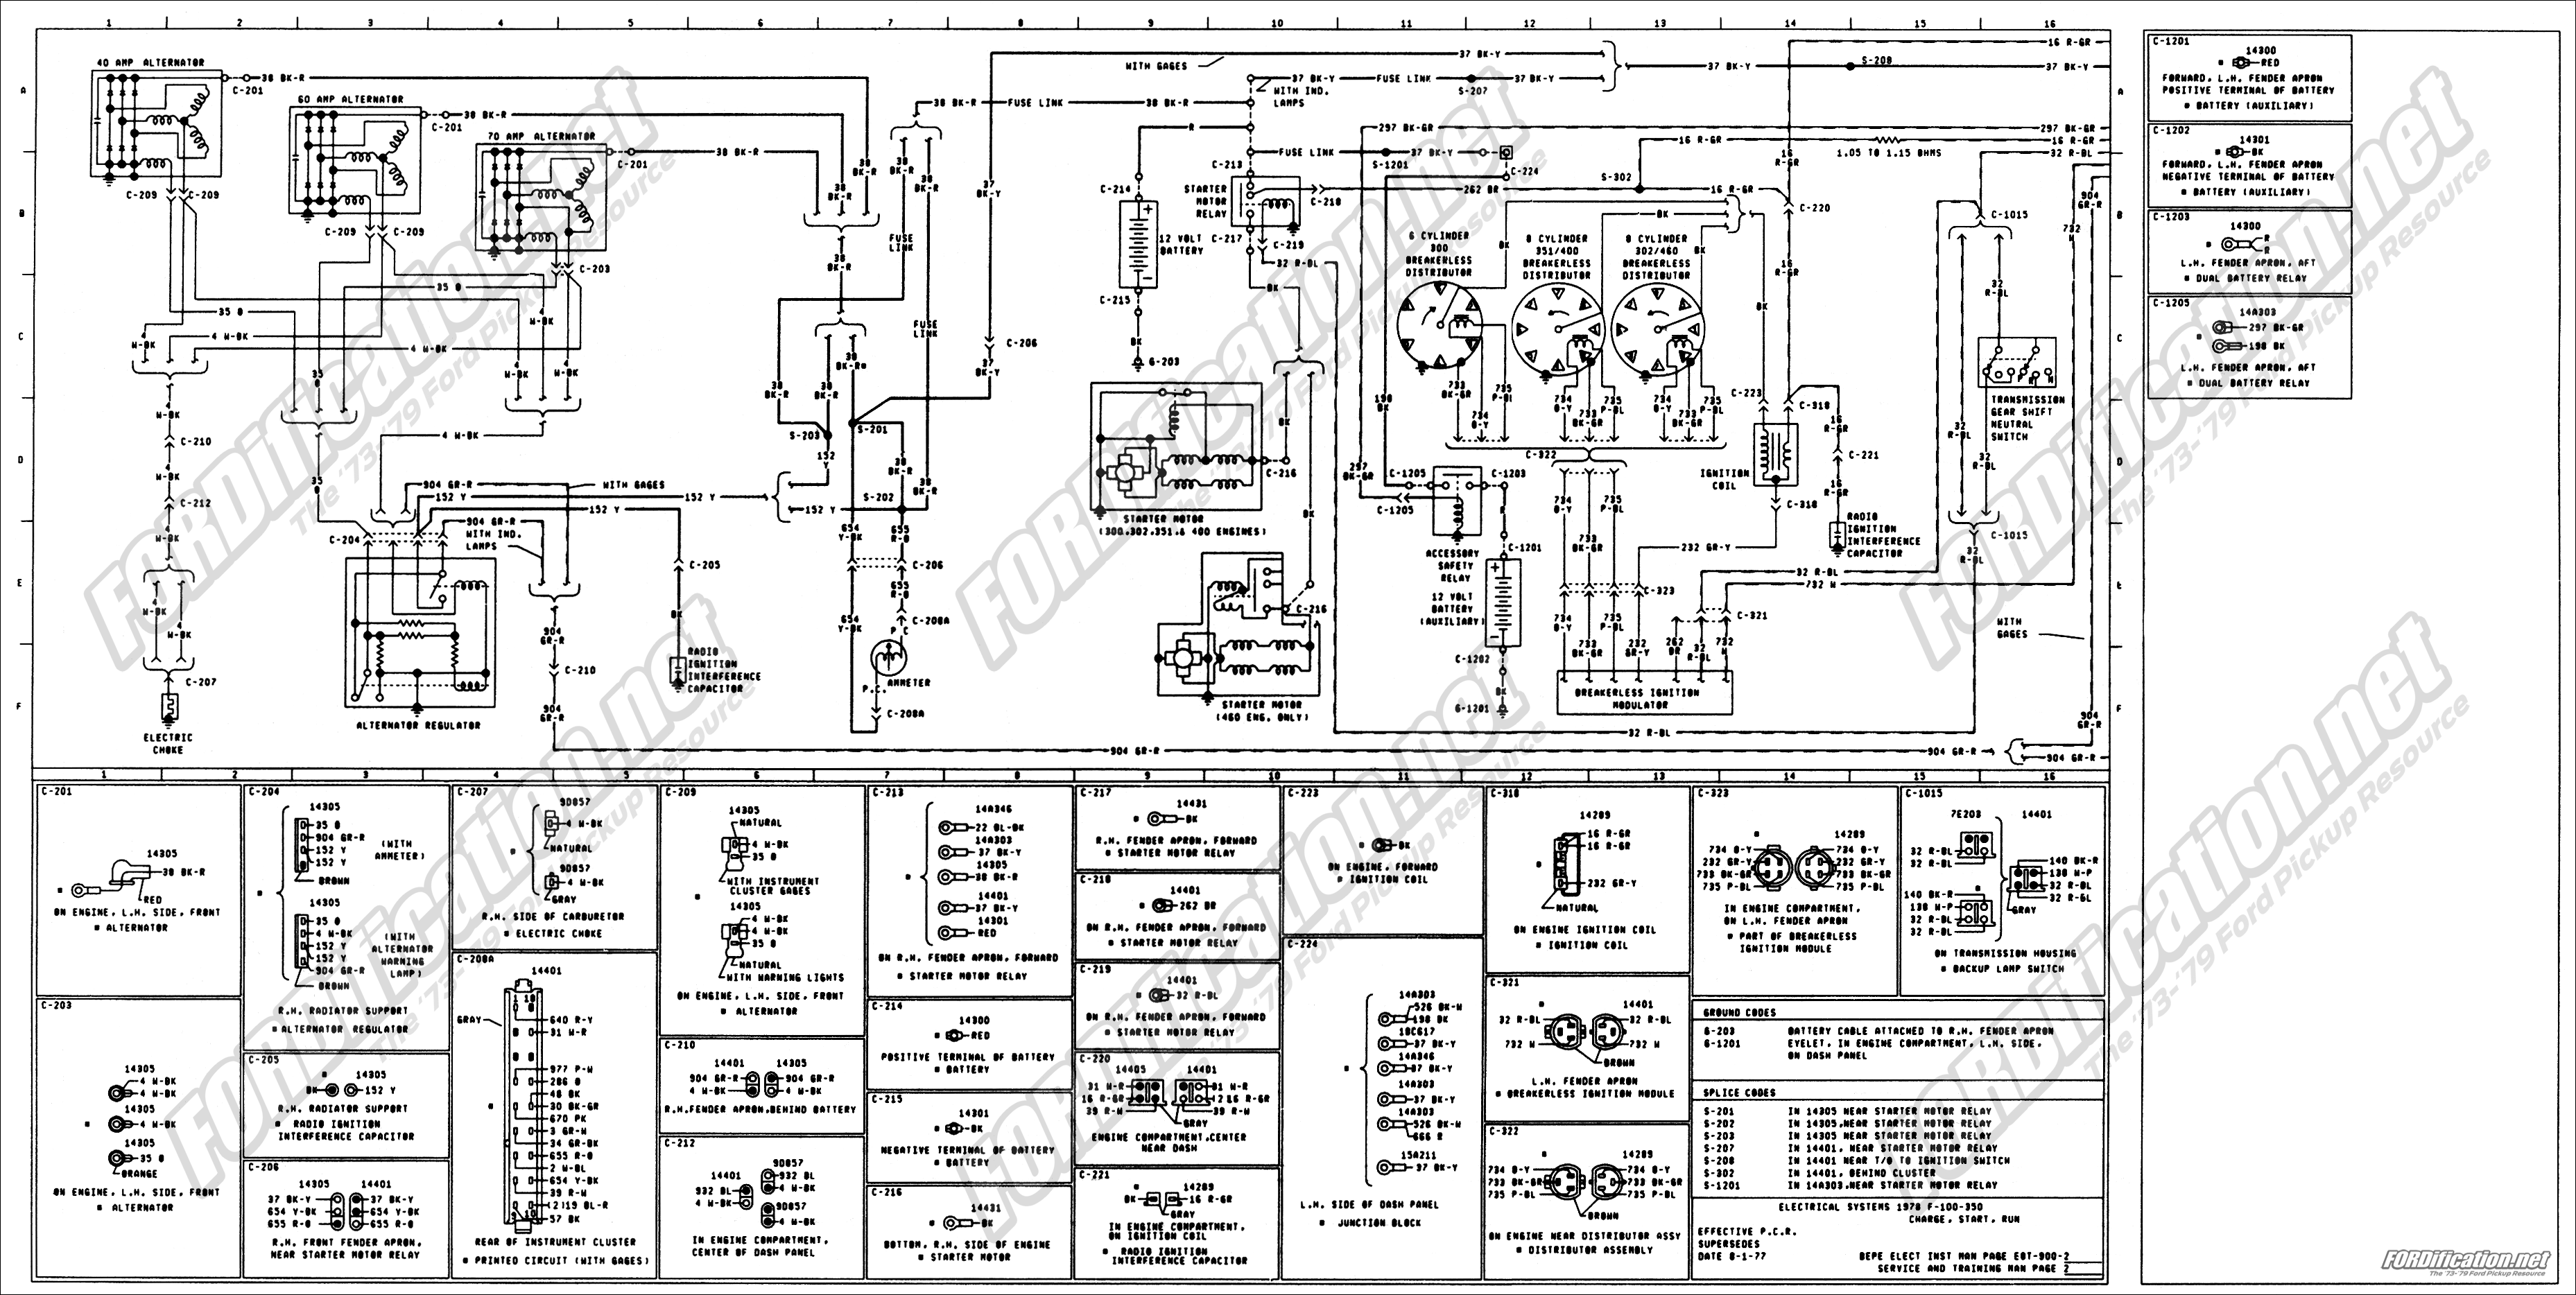 [WRG-1056] Wiring Diagram For 1978 Bronco